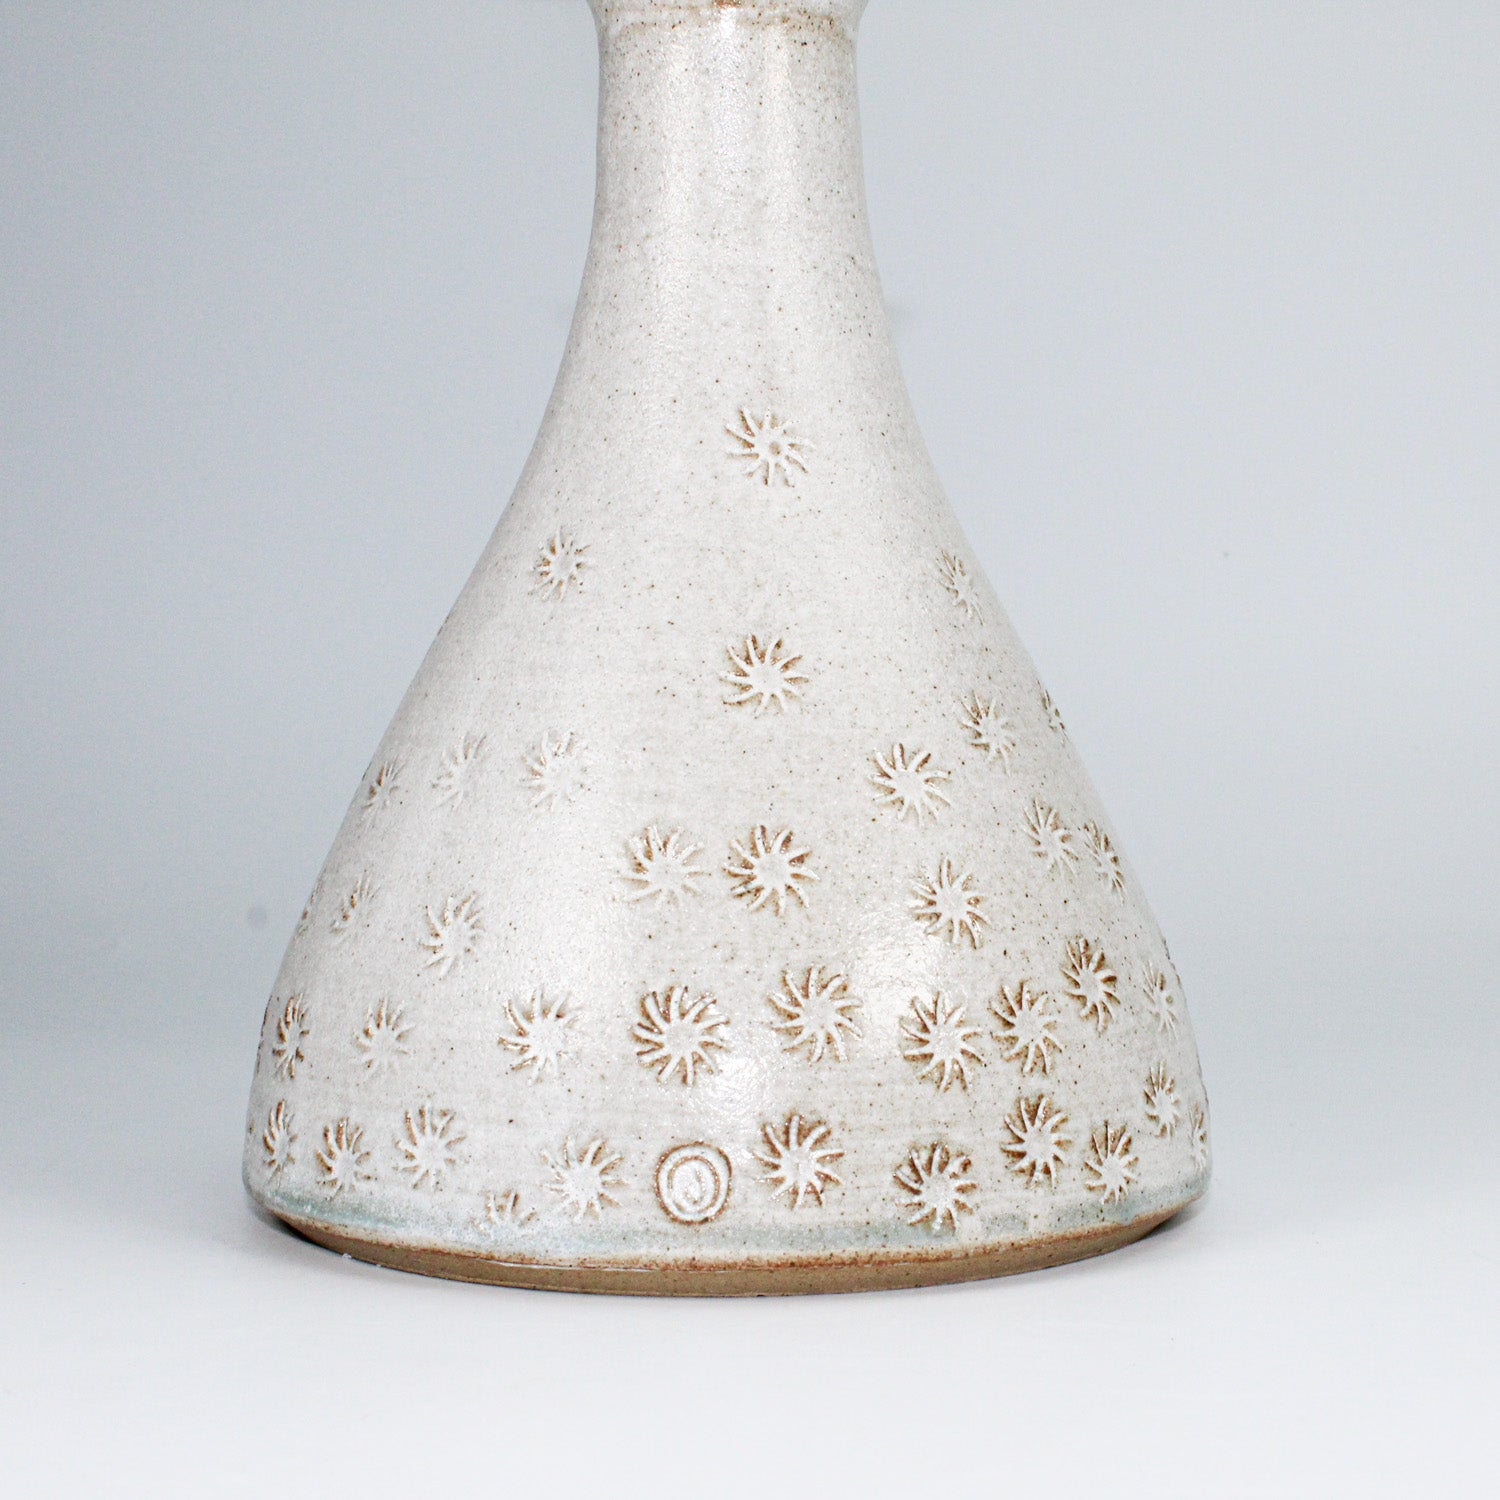 Close up of bottom of ceramic bottle vase with embossed detail